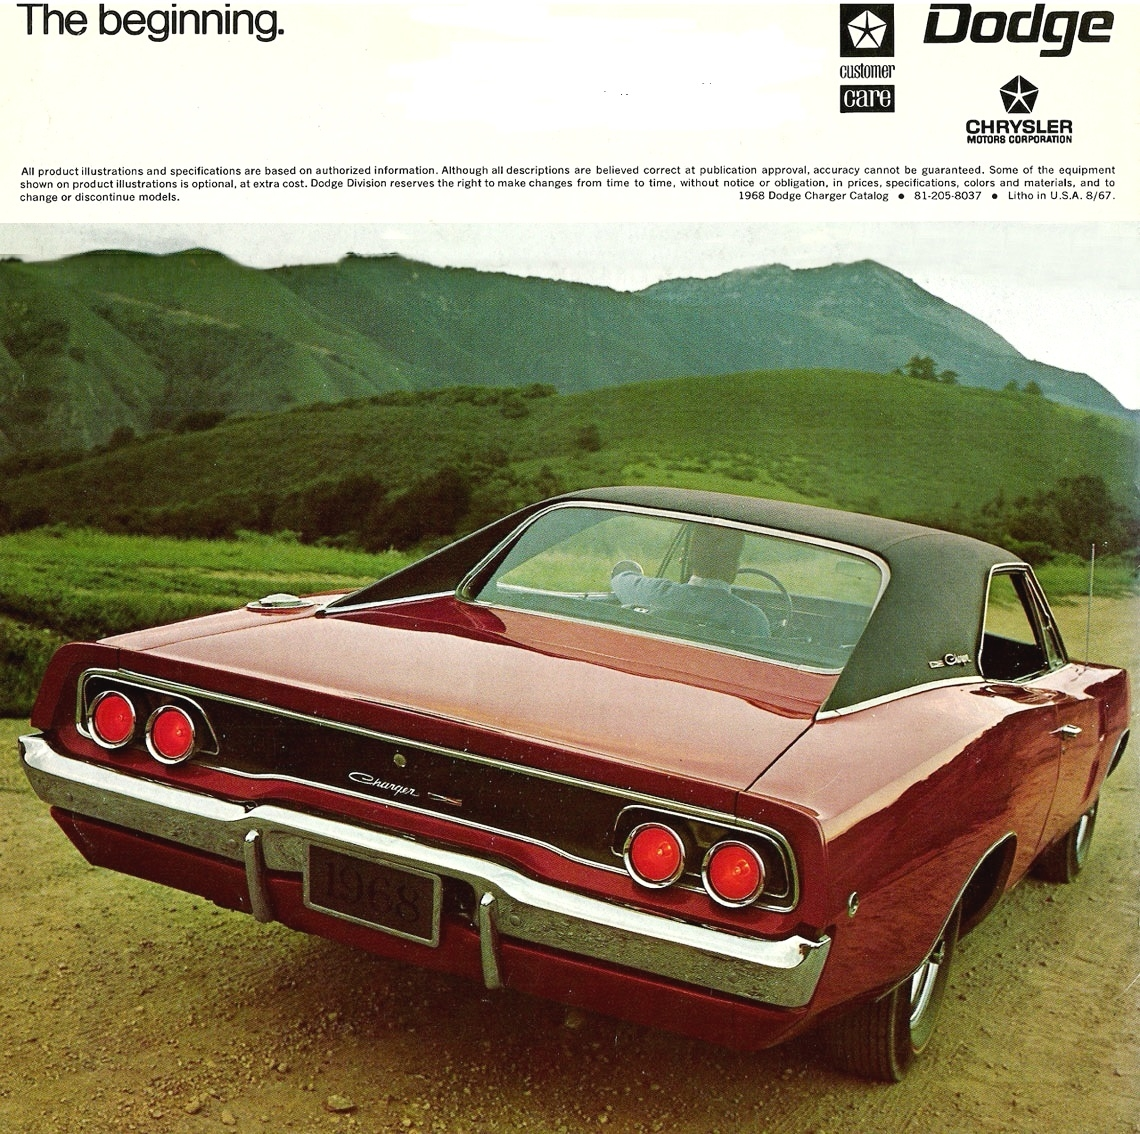 Original Sales Brochure for 1968 Dodge Charger